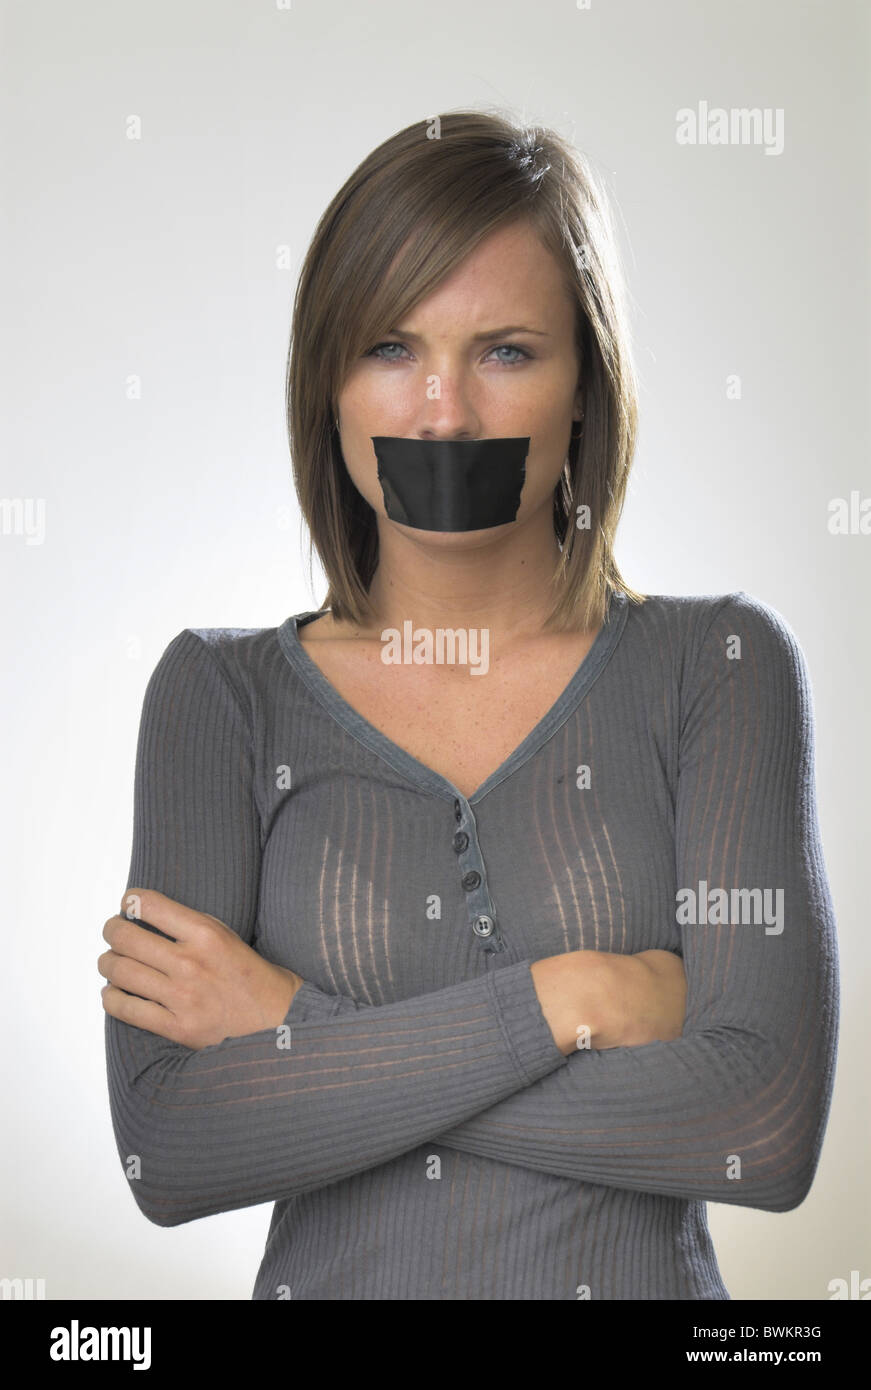 woman Inside portrait Gagged toggle plaster mouth adhesive tape Silent Sullenly protest remonstrance studi - Stock Image